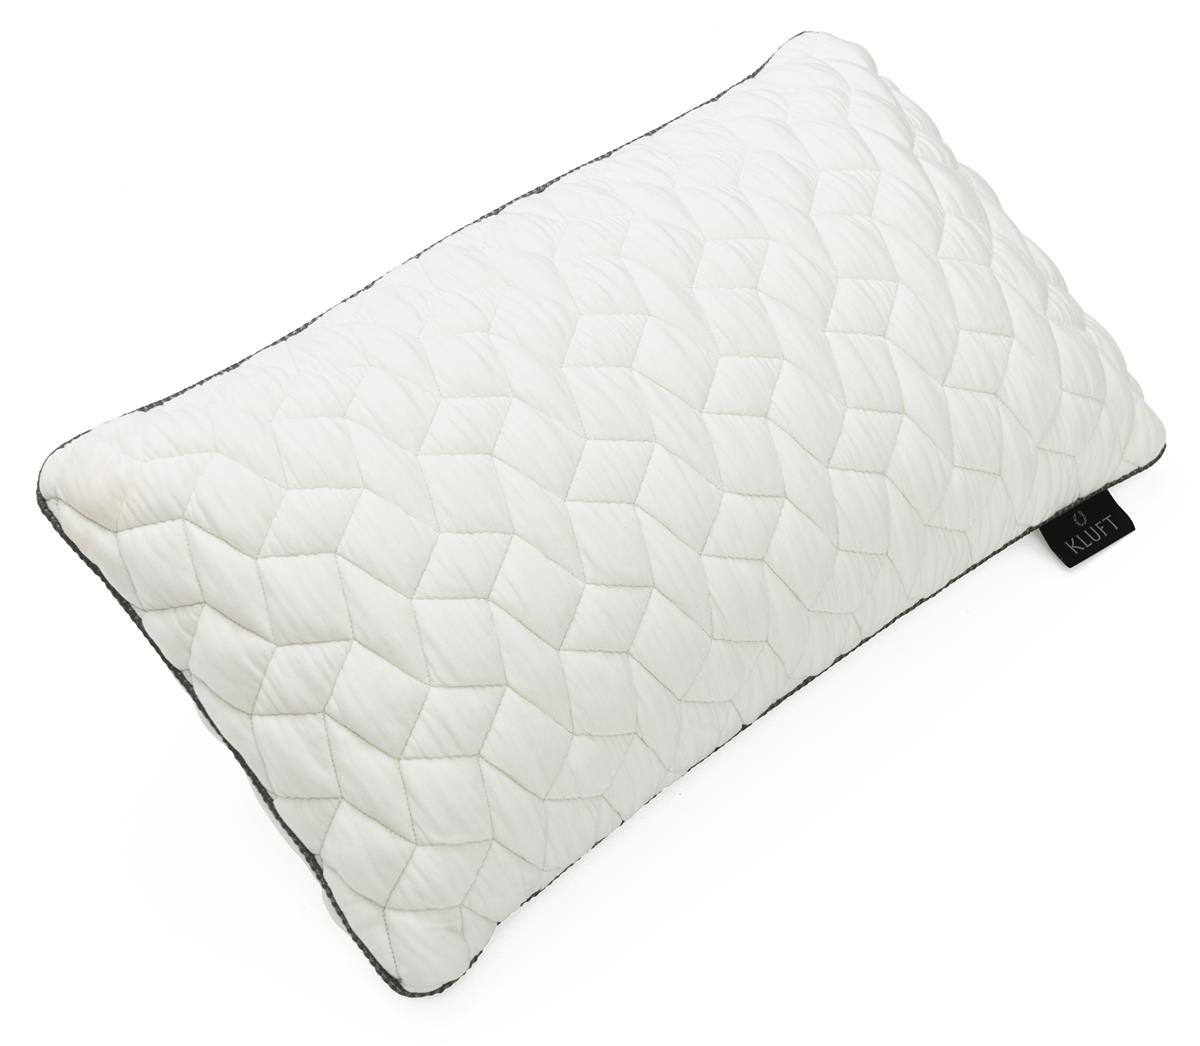 bishops products pillows from view pillow shop accolade latex beds ultimate